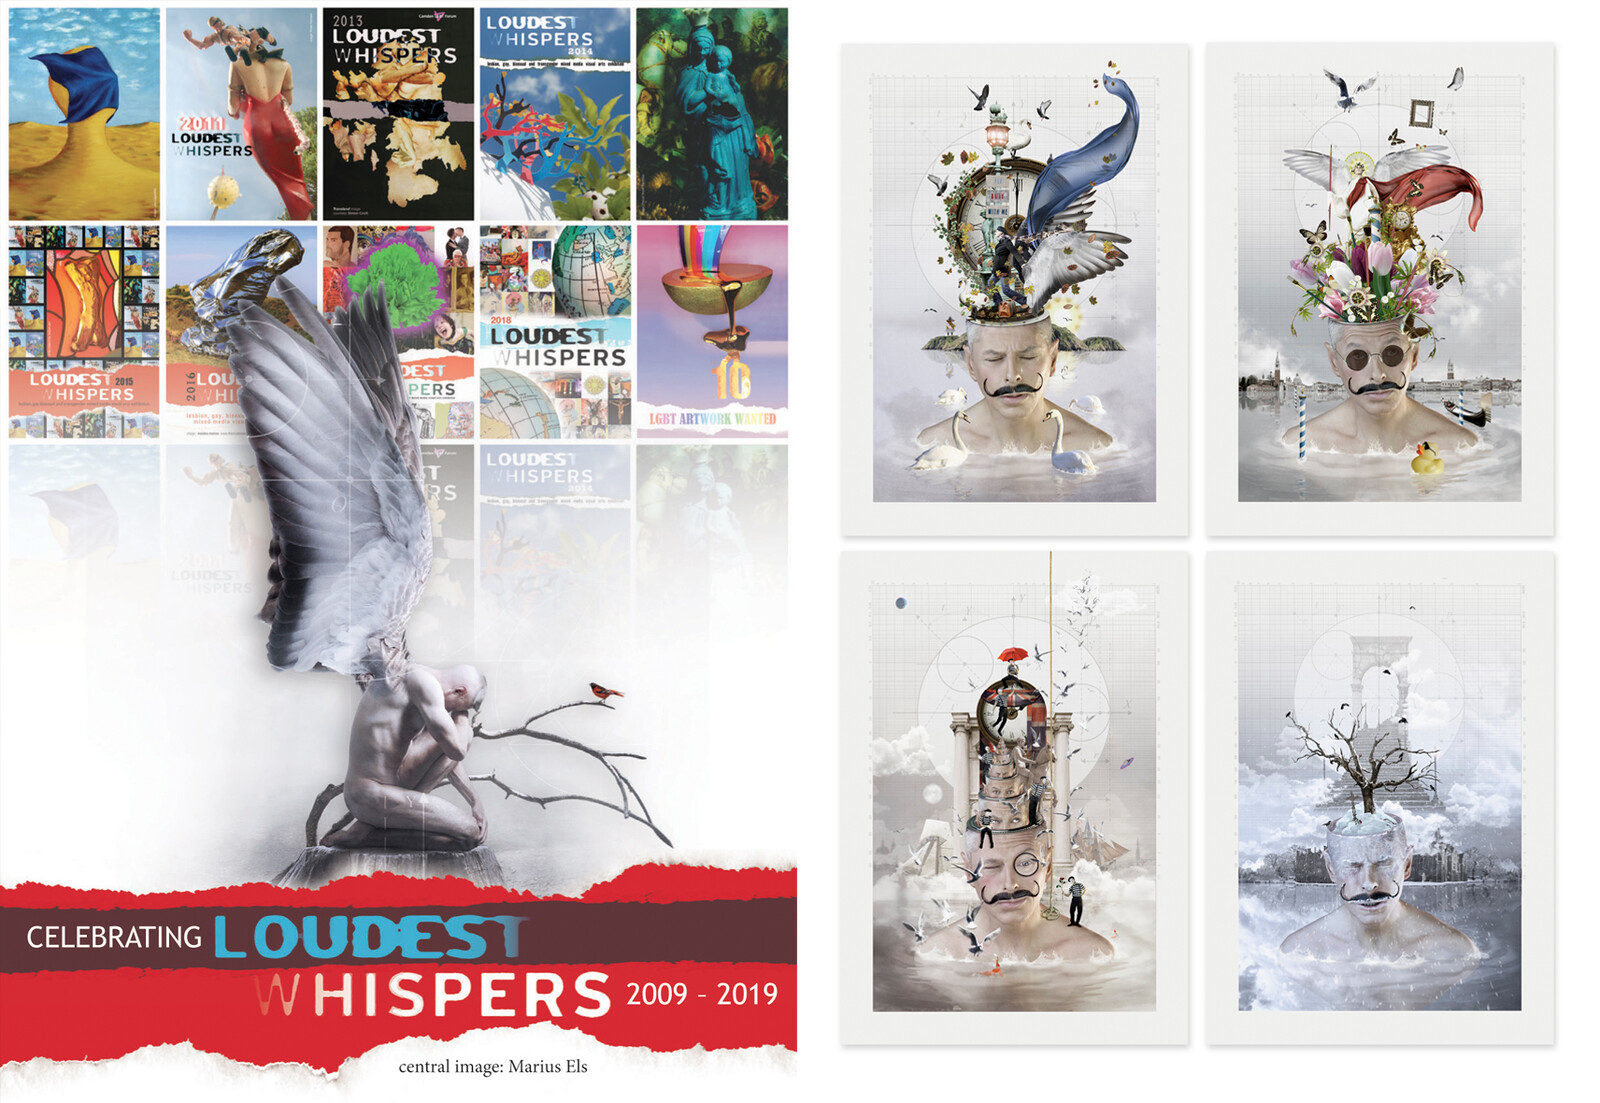 Seasons of the Mind - Loudest Whispers 2019 exhibition, London.